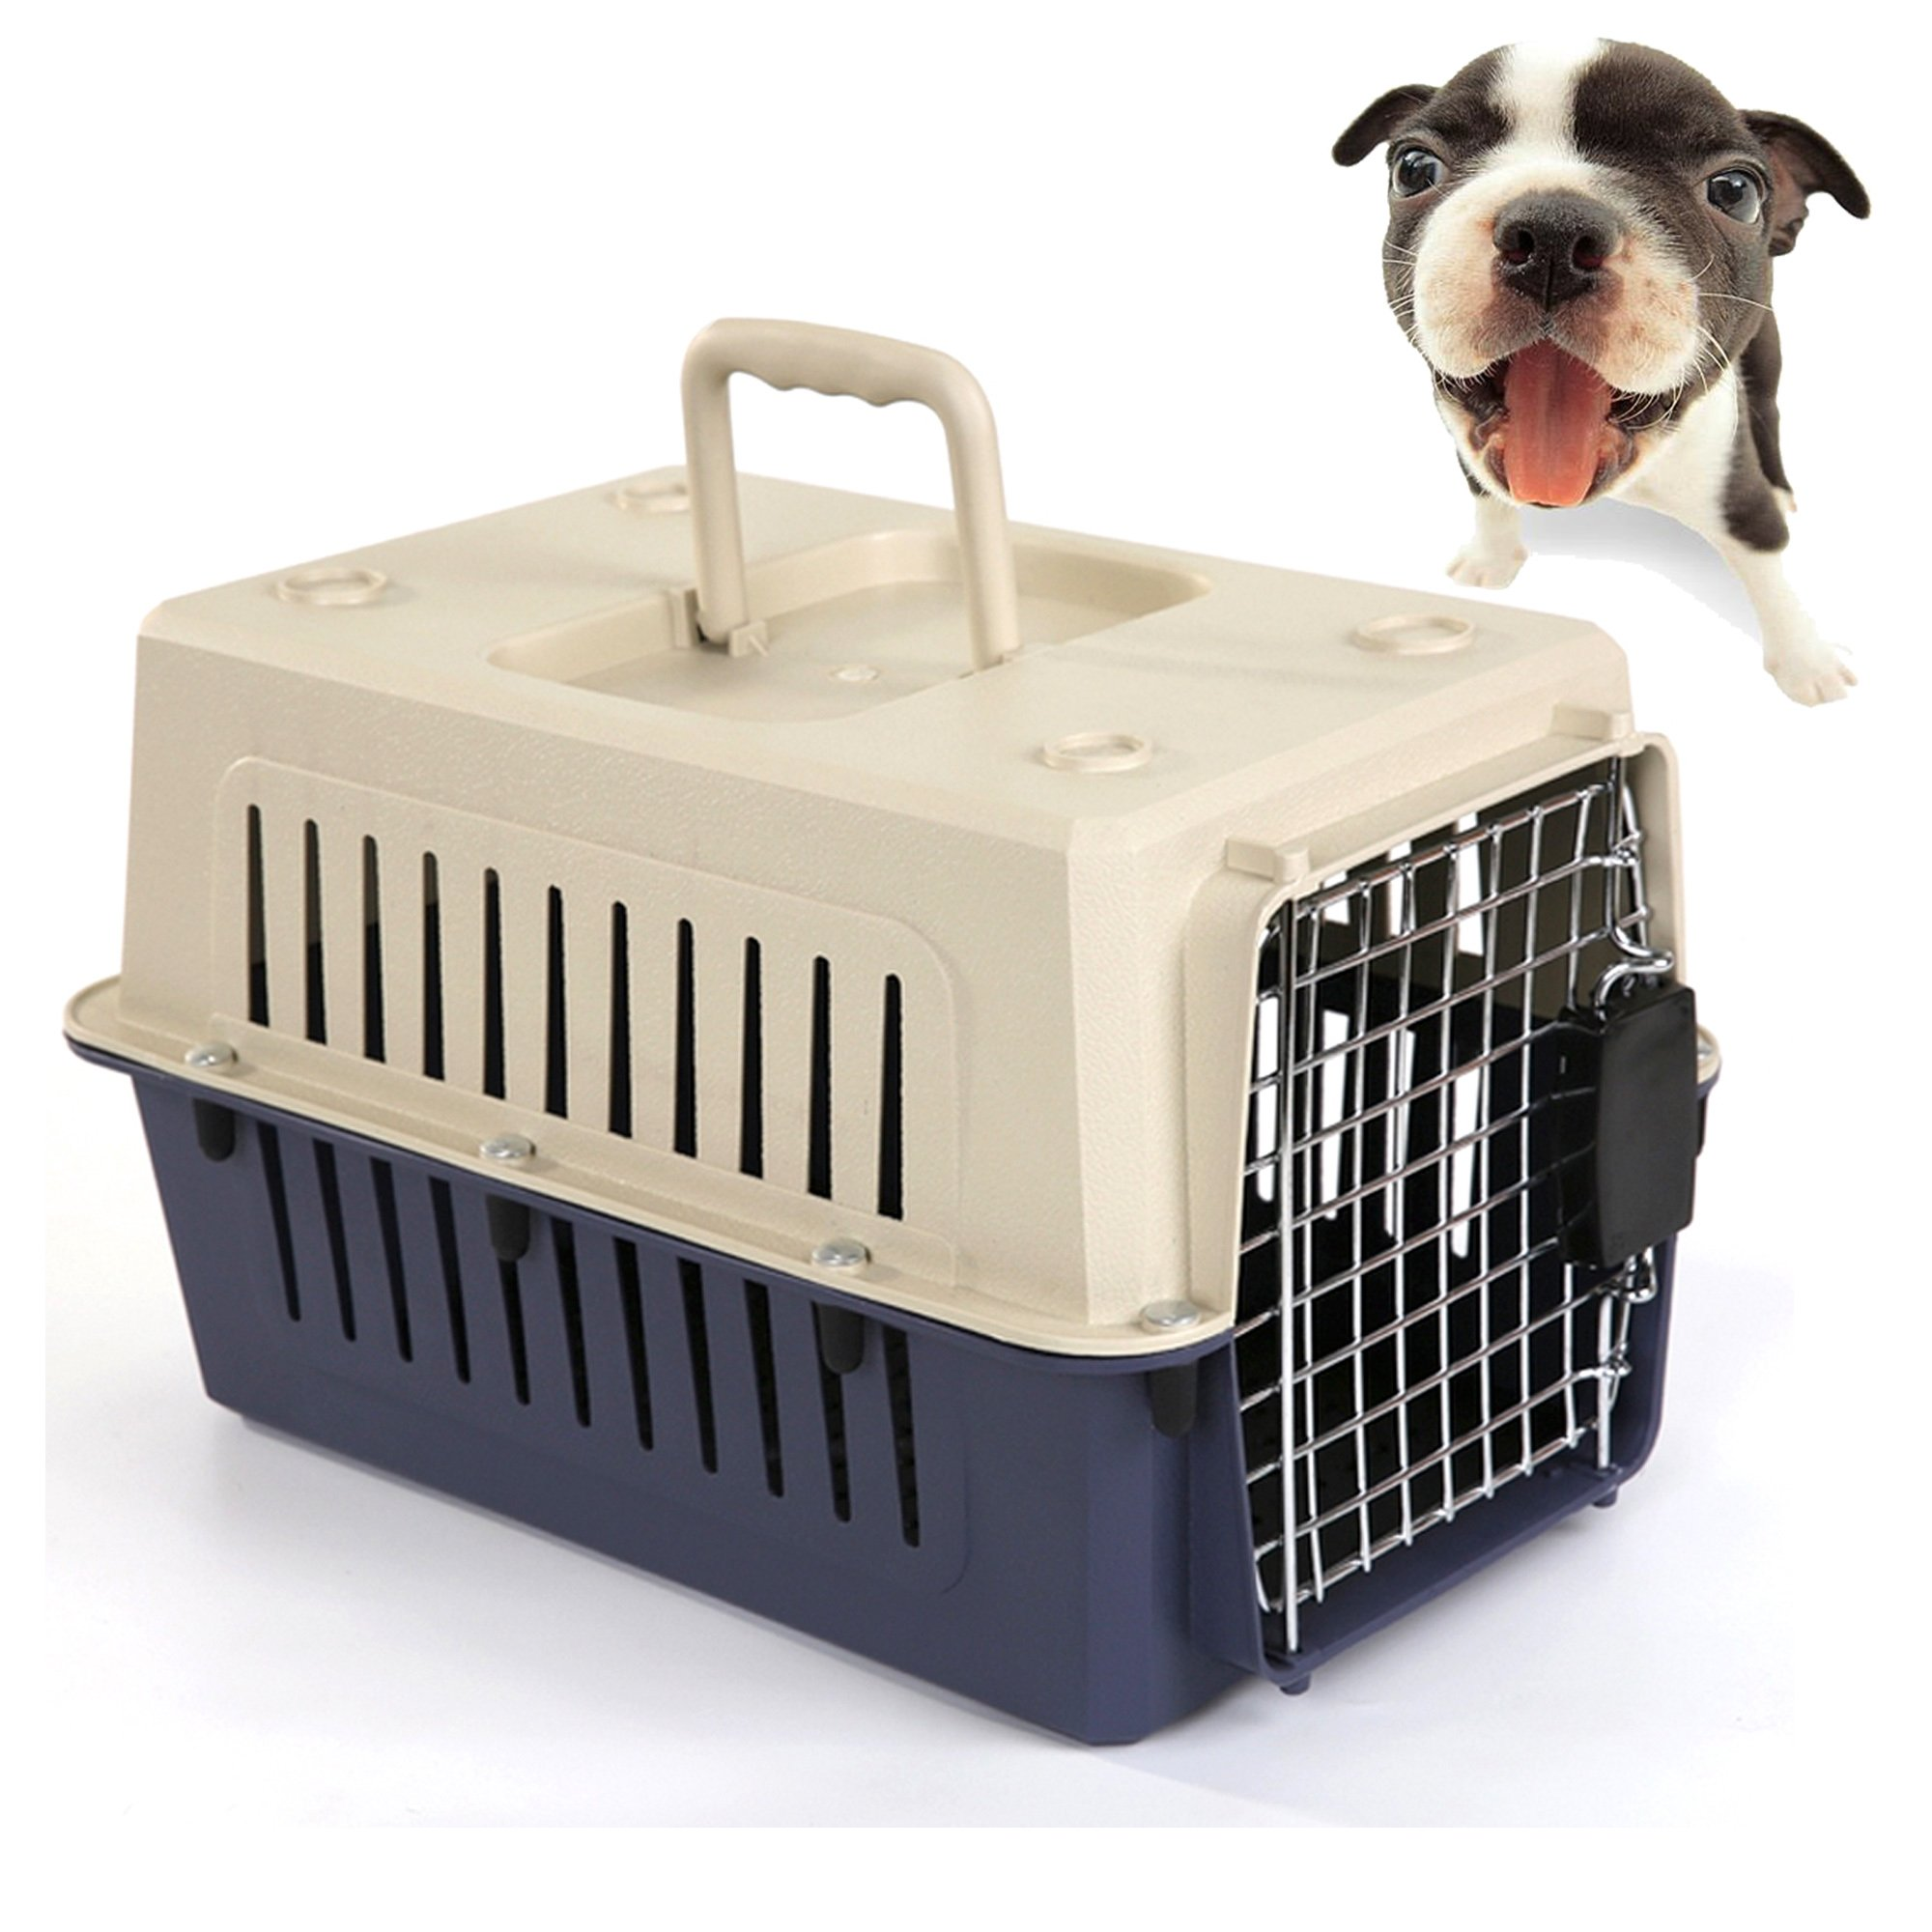 Lucky Tree 4 Size Pet Carrier Cat Carriers Kennel Crate Airline Approved Kitty Travel Cage Plastic Lightweight and Safe to Carry for Puppy Bunny Cats, 2 Color